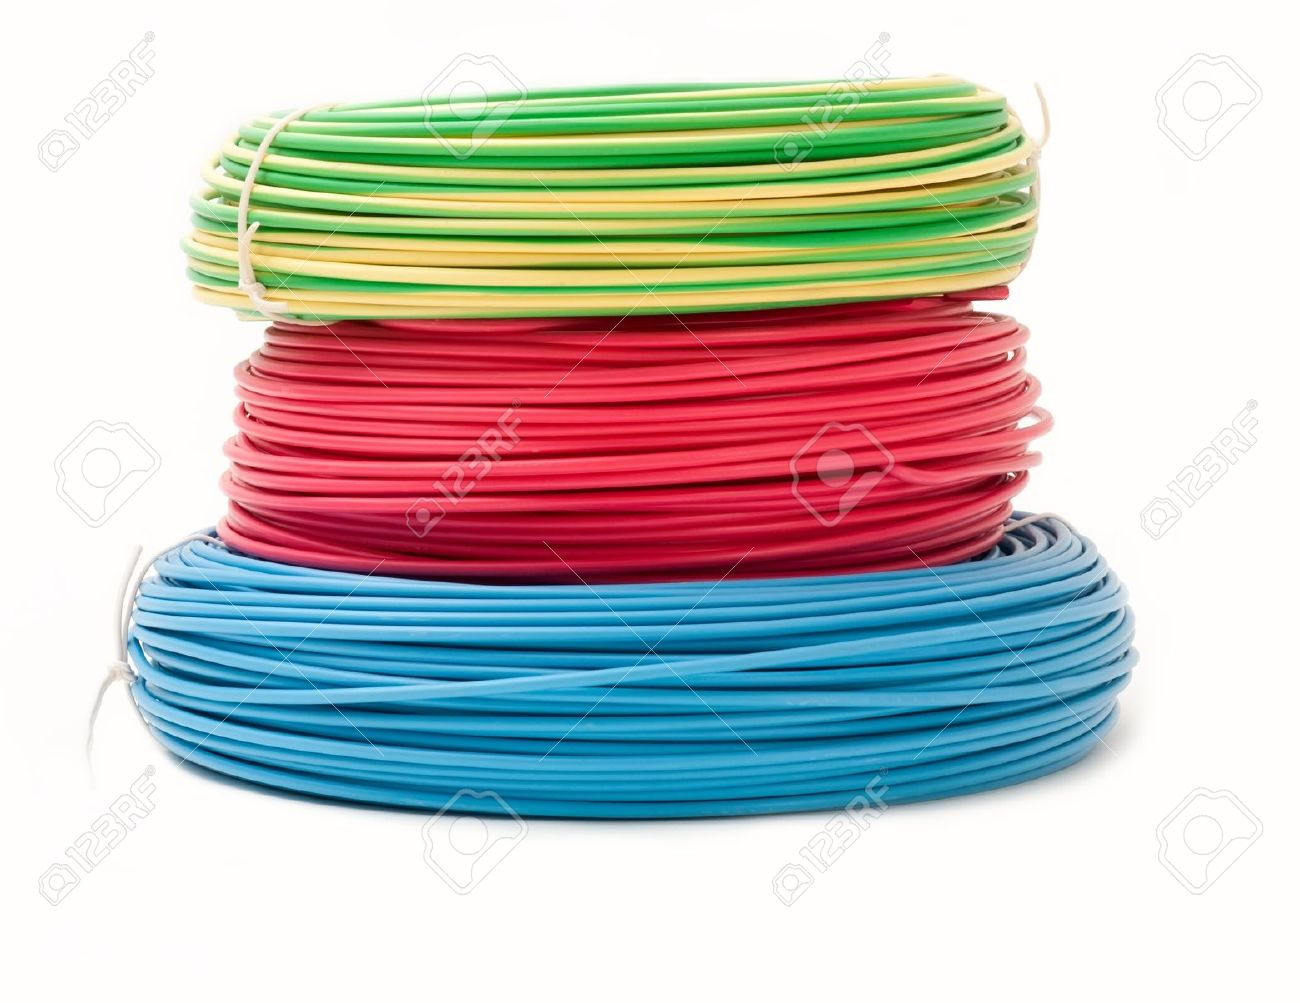 Green  red and blue wire  Wire